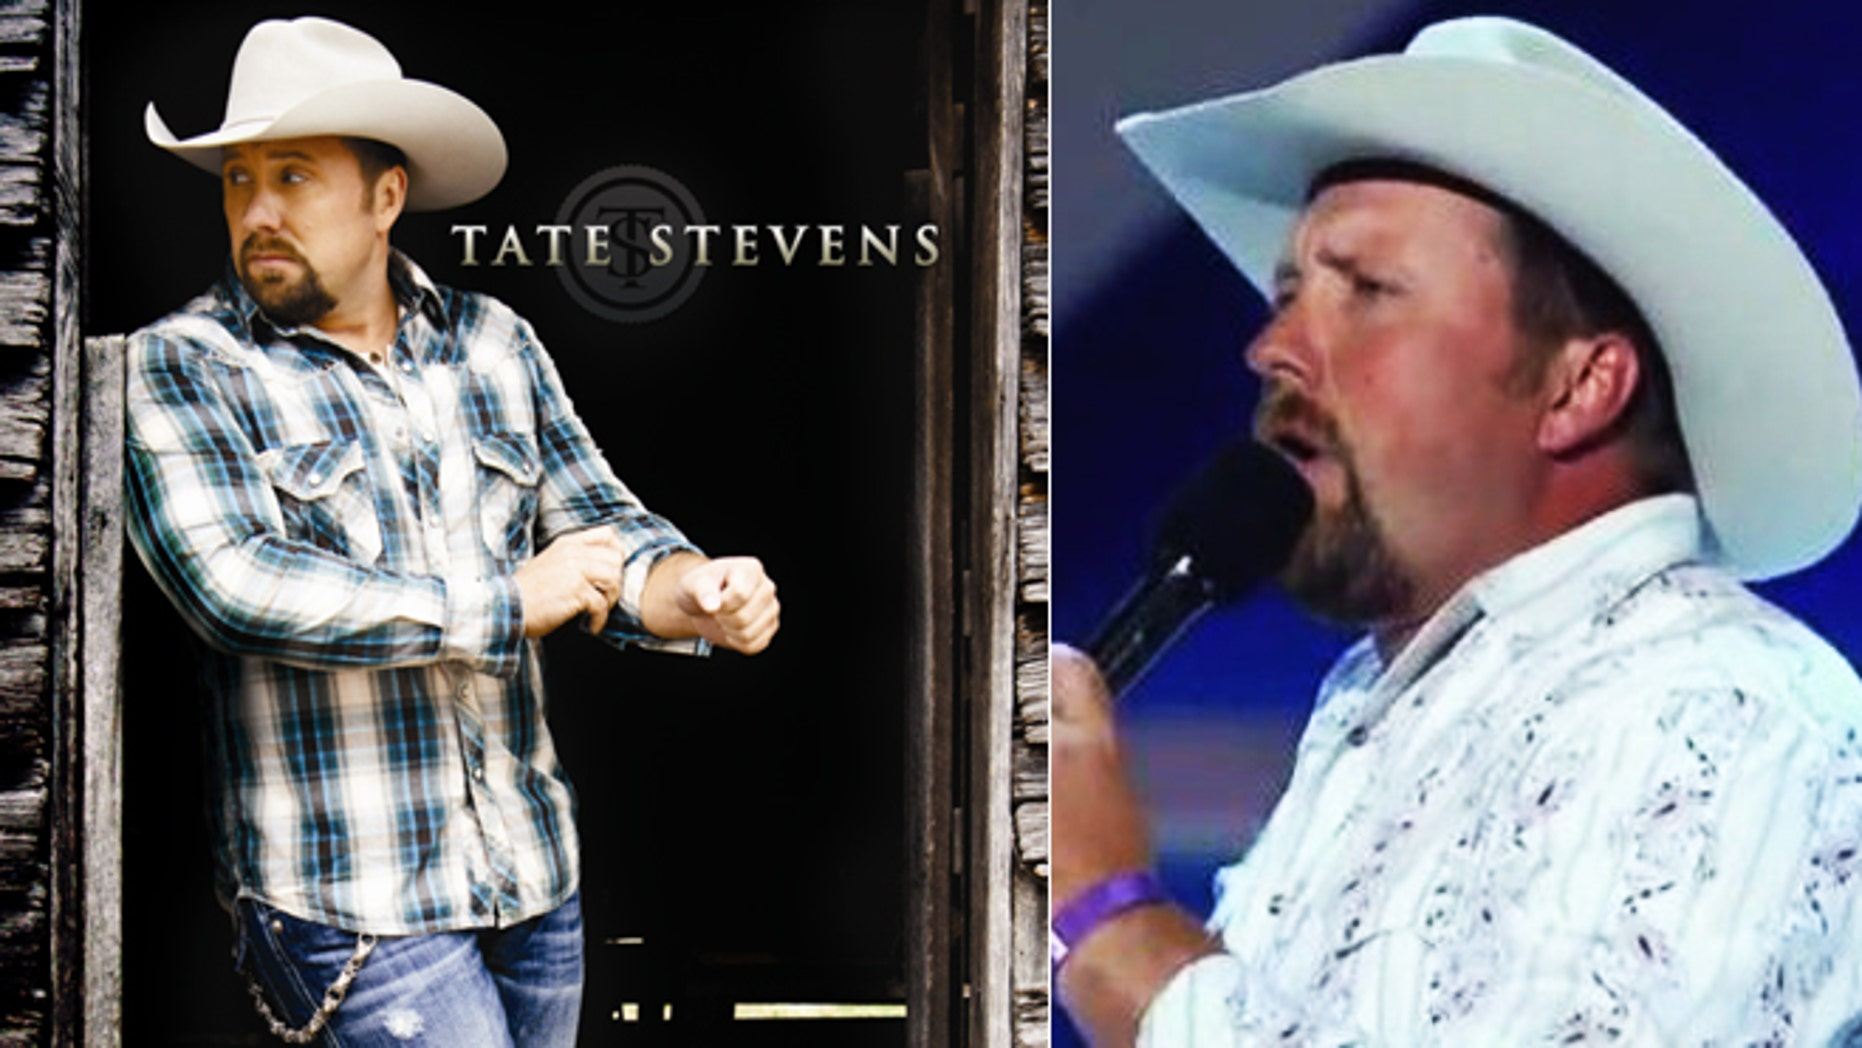 Tate Steven's debut album, and performing on 'X Factor.'